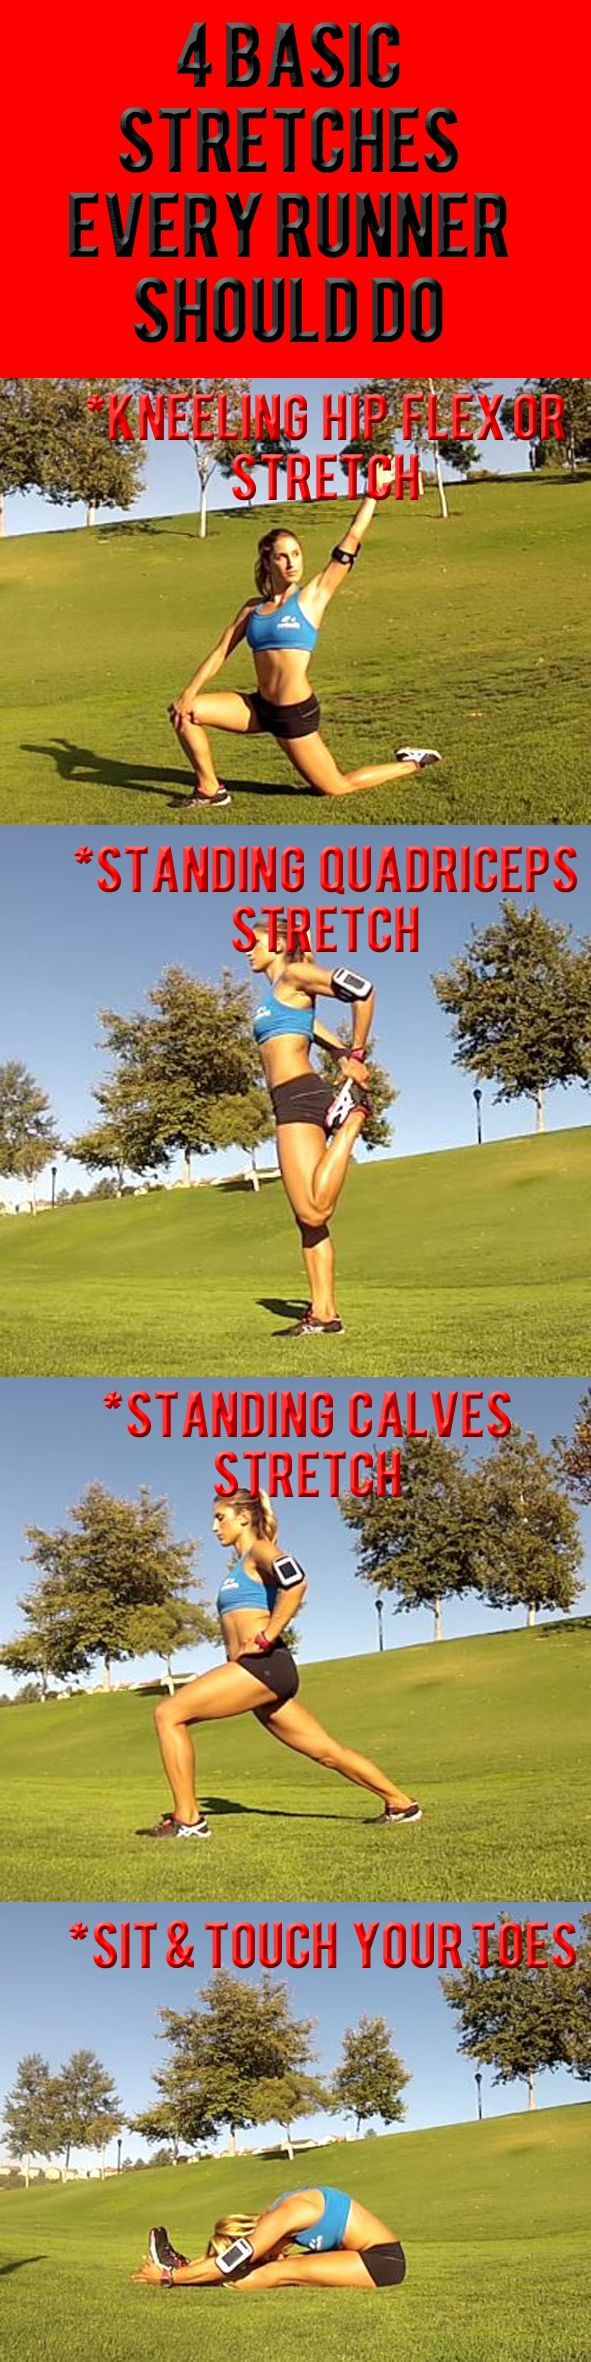 AFTER RUNNING STRETCHES: Hold each stretch for 30 seconds to ensure that your muscles fully release and get a great stretch.